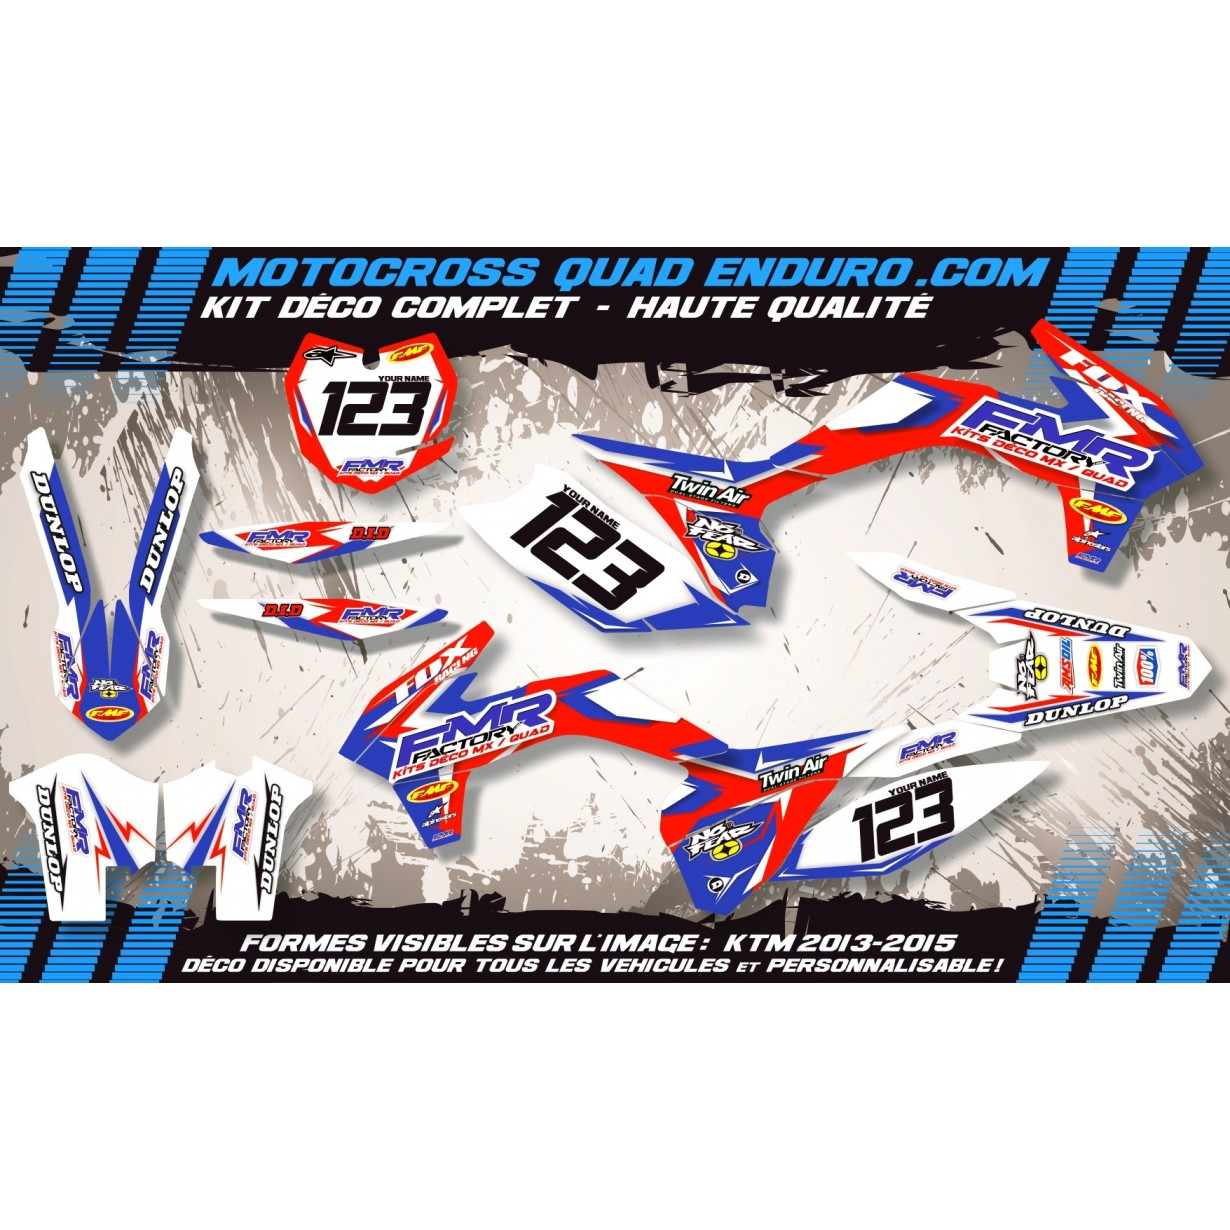 KIT DÉCO Perso 50 RR enduro 11-17 Fmr Factory MA13A